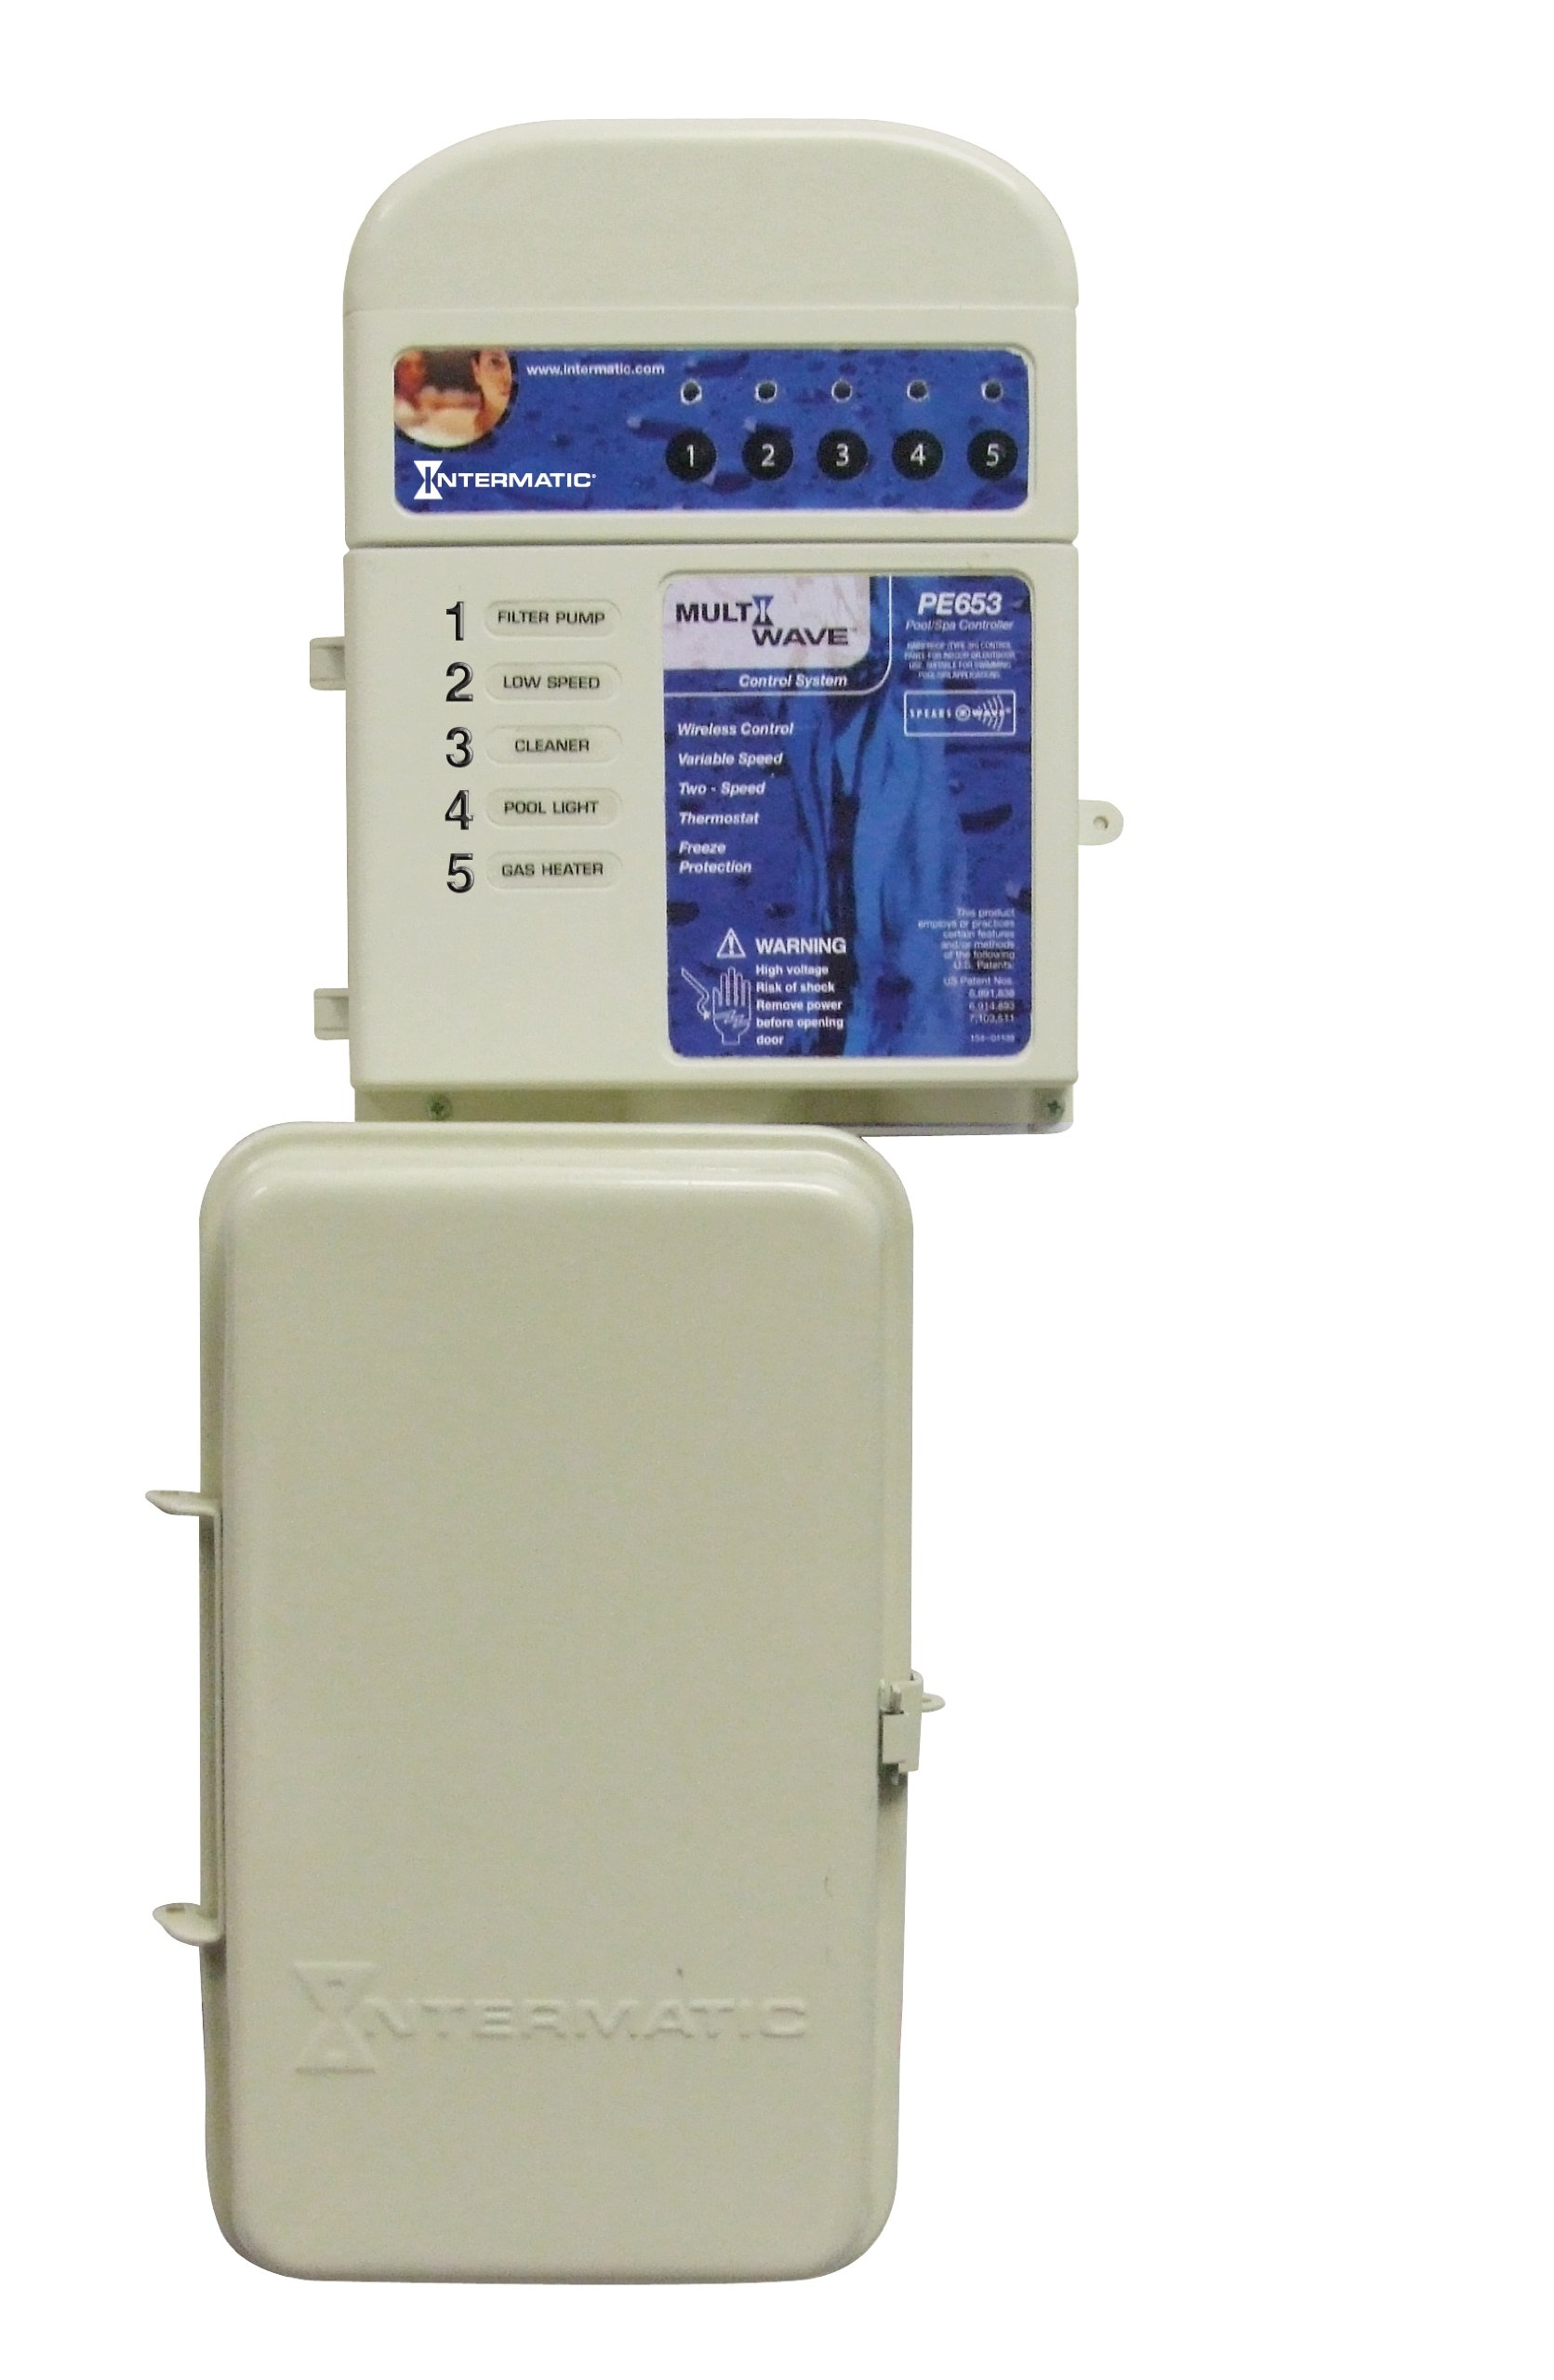 Intermatic PE653RC Wireless Control System for Variable Speed and Two-Speed Pumps